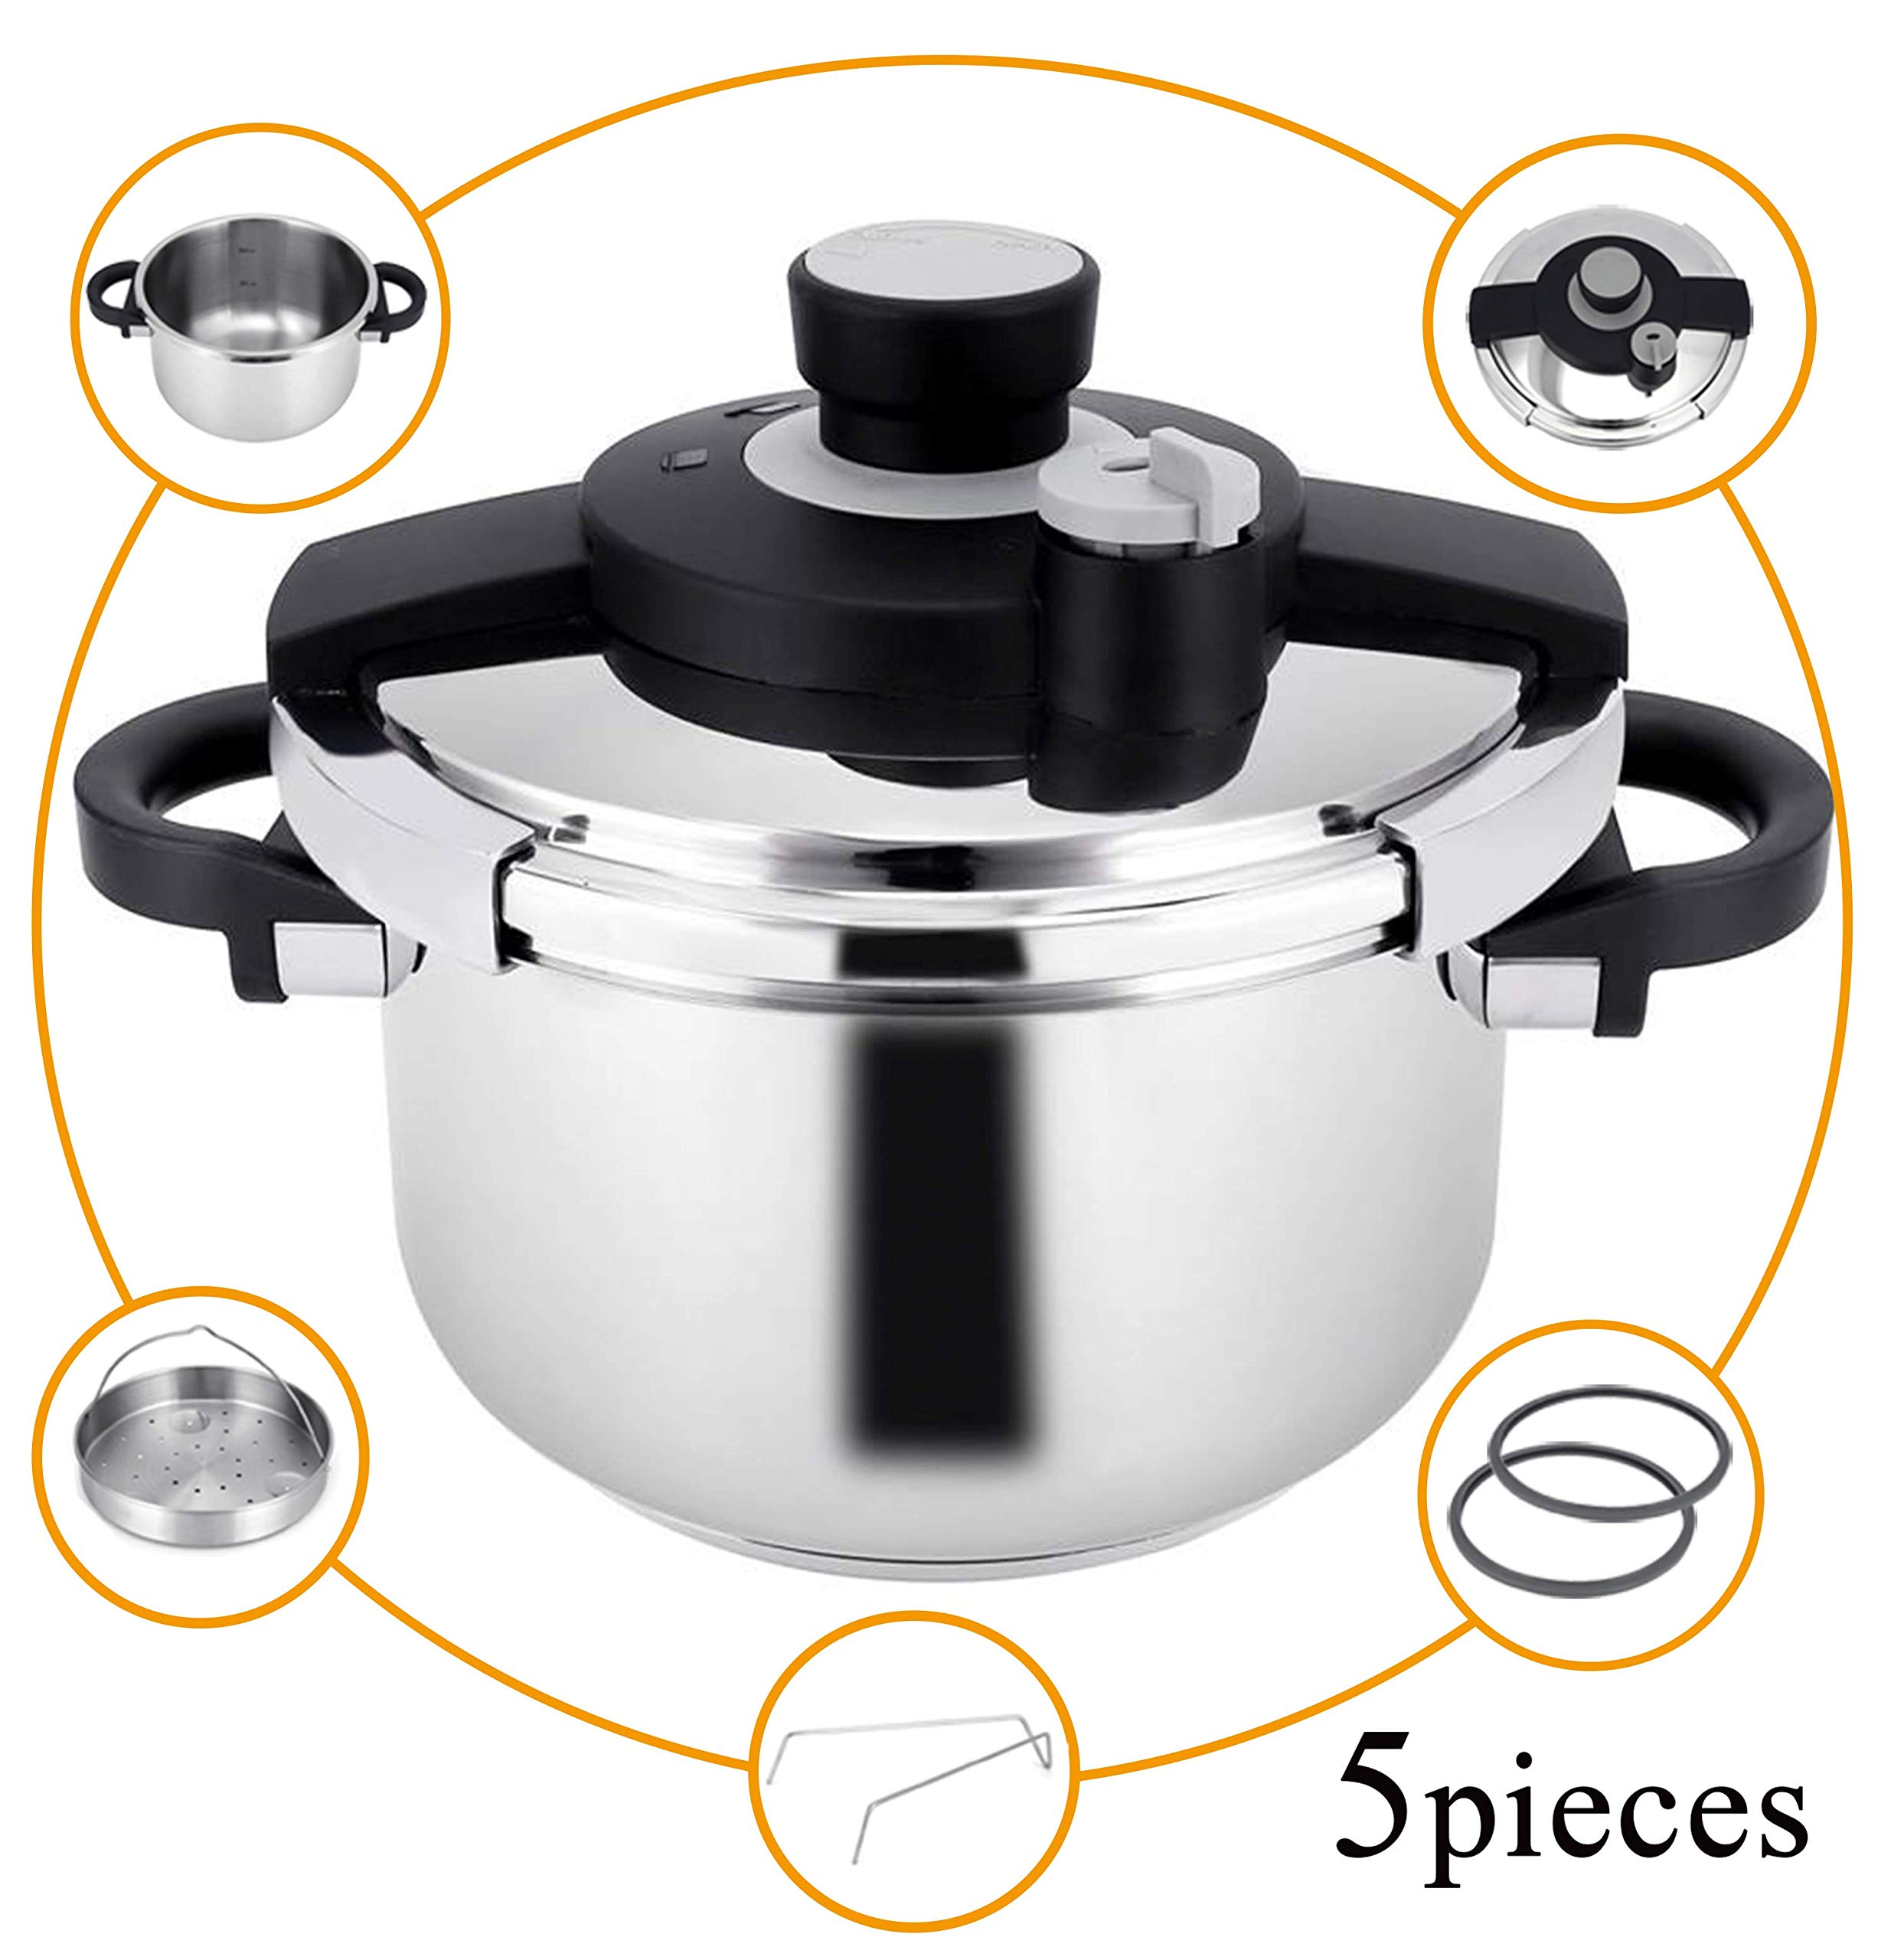 Z&L 6Quart 5.7L Stainless Steel Pressure Cooker with One-hand System,7psi/12psi Settings Premium Stove Top Pressure Cooker Work with Stove Top,Induction Base,Gas Stove Cookware.(Accessories included)